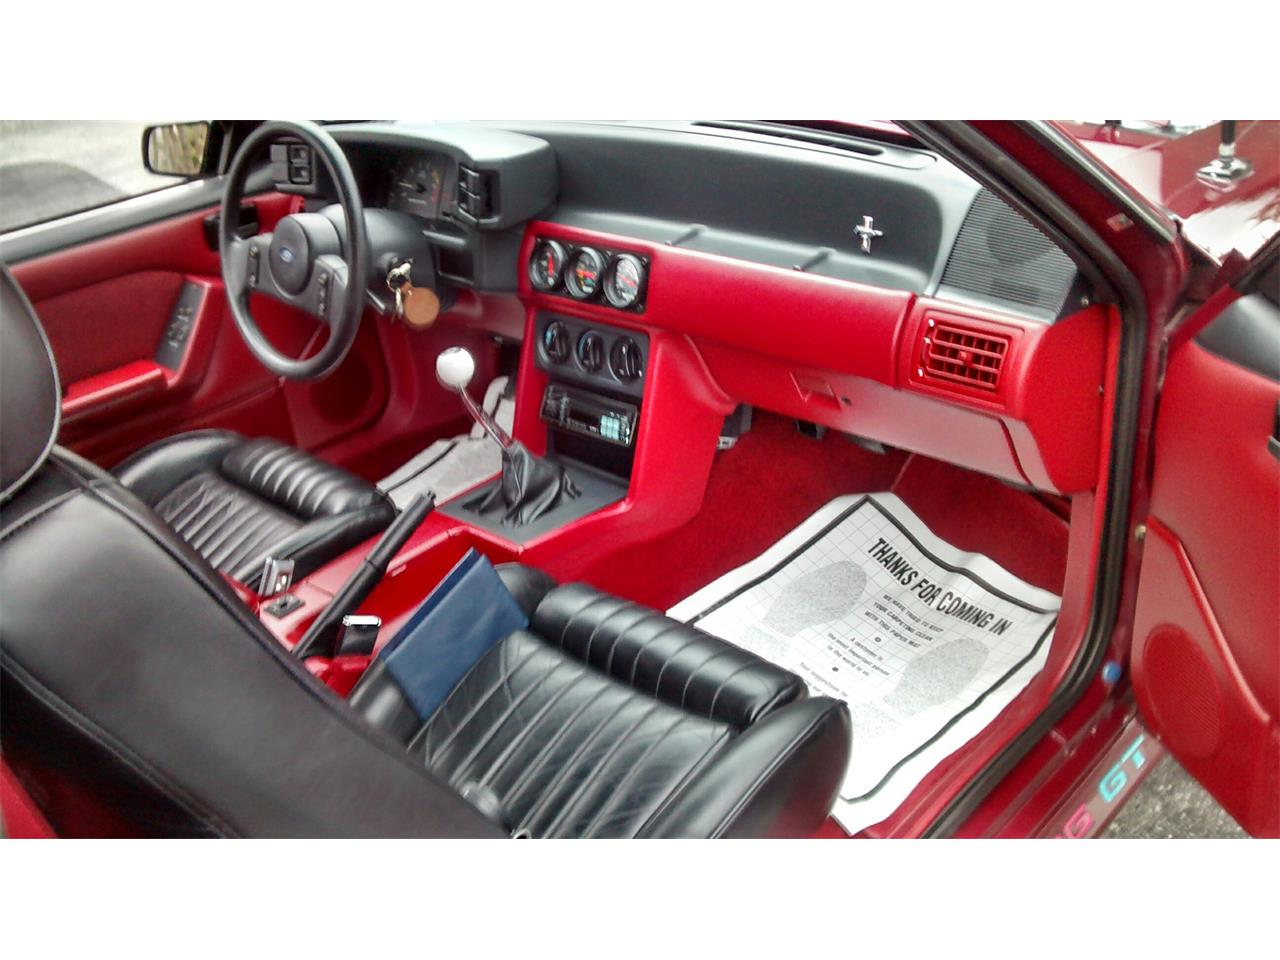 Large Picture of '89 Mustang GT Offered by a Private Seller - Q101